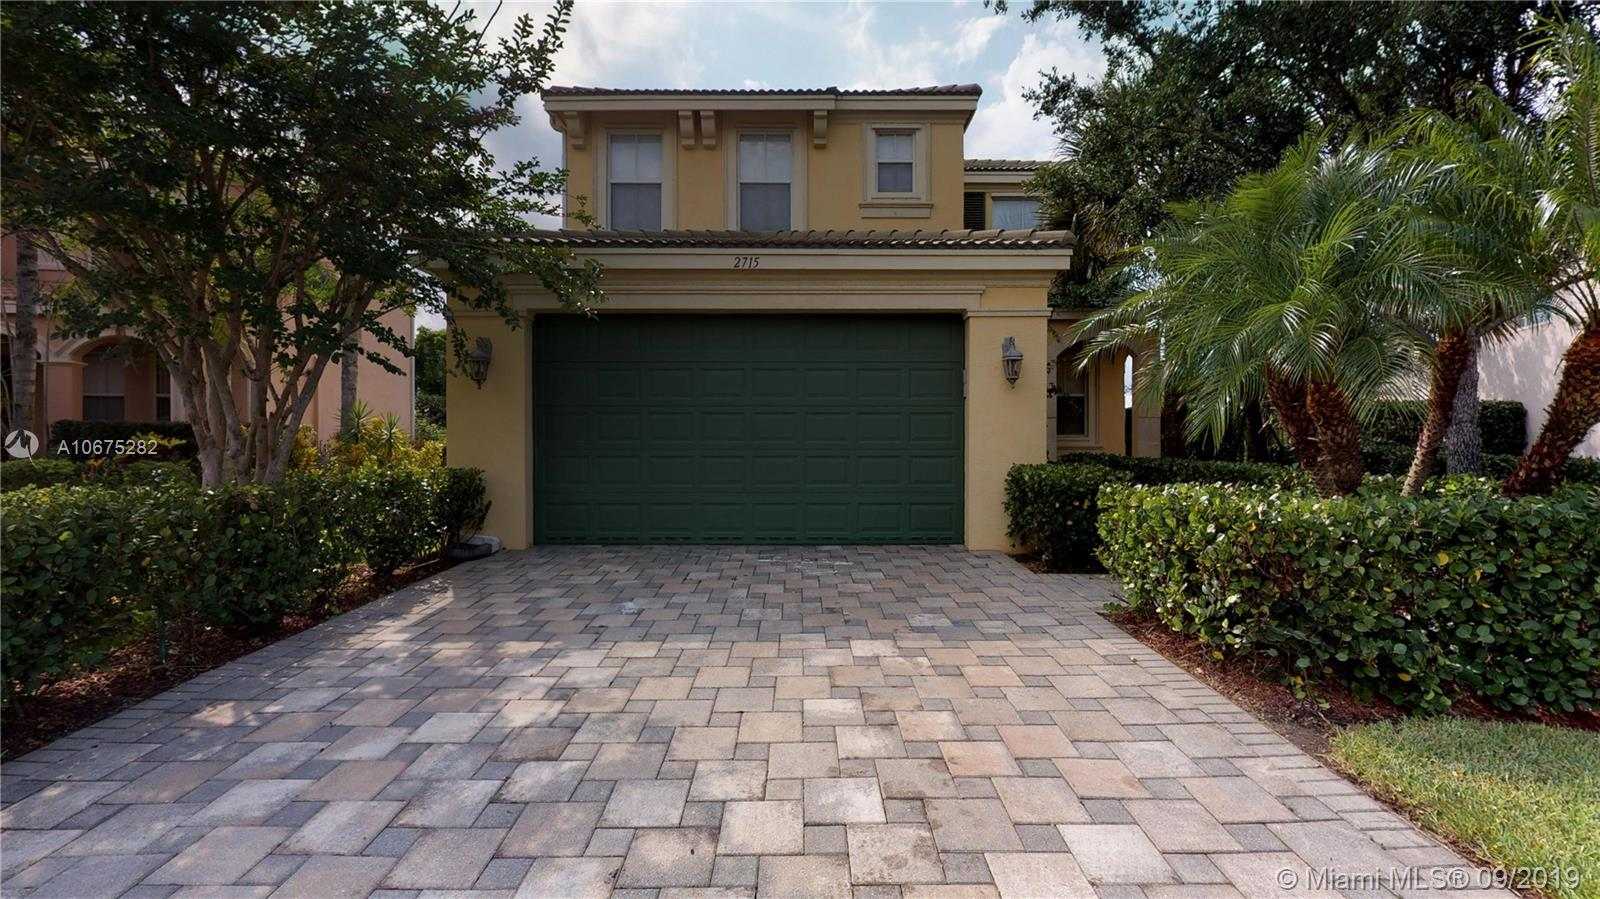 2715 Pienza Cir, Royal Palm Beach, Florida